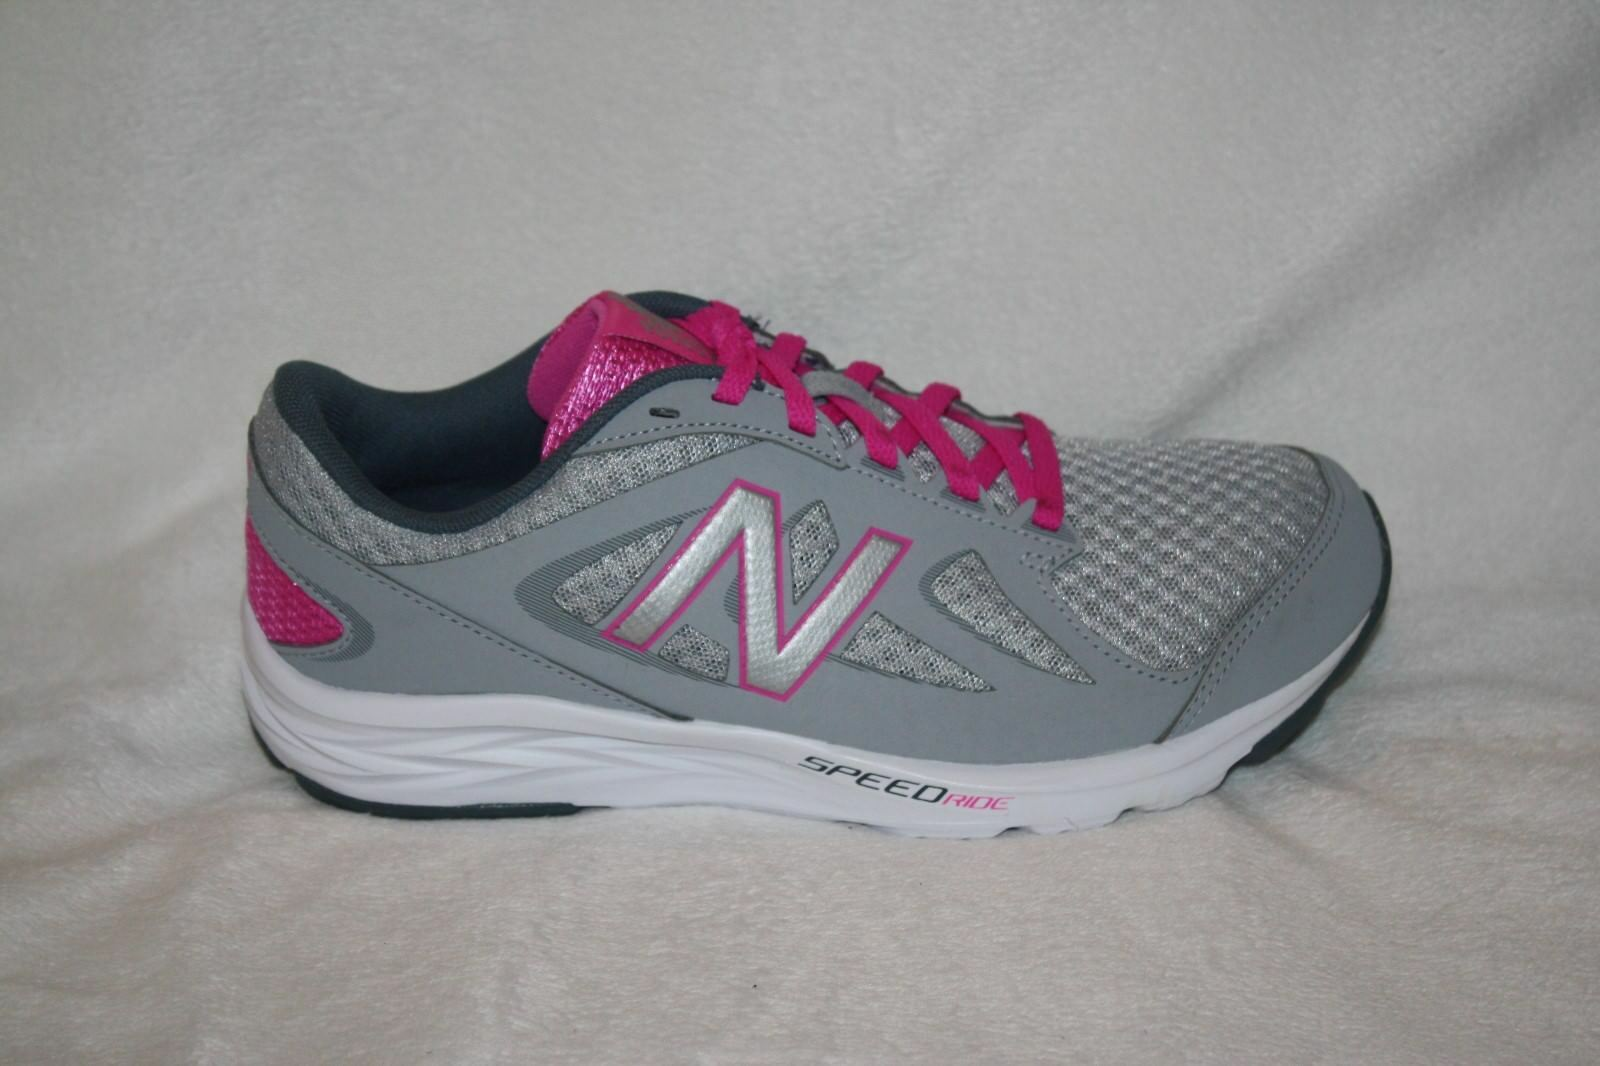 WOMENS NEW BALANCE SPEED RIDE 490V4 GRAY&PINK TENNIS SHOES WIDE-SEE SIZES (K40)